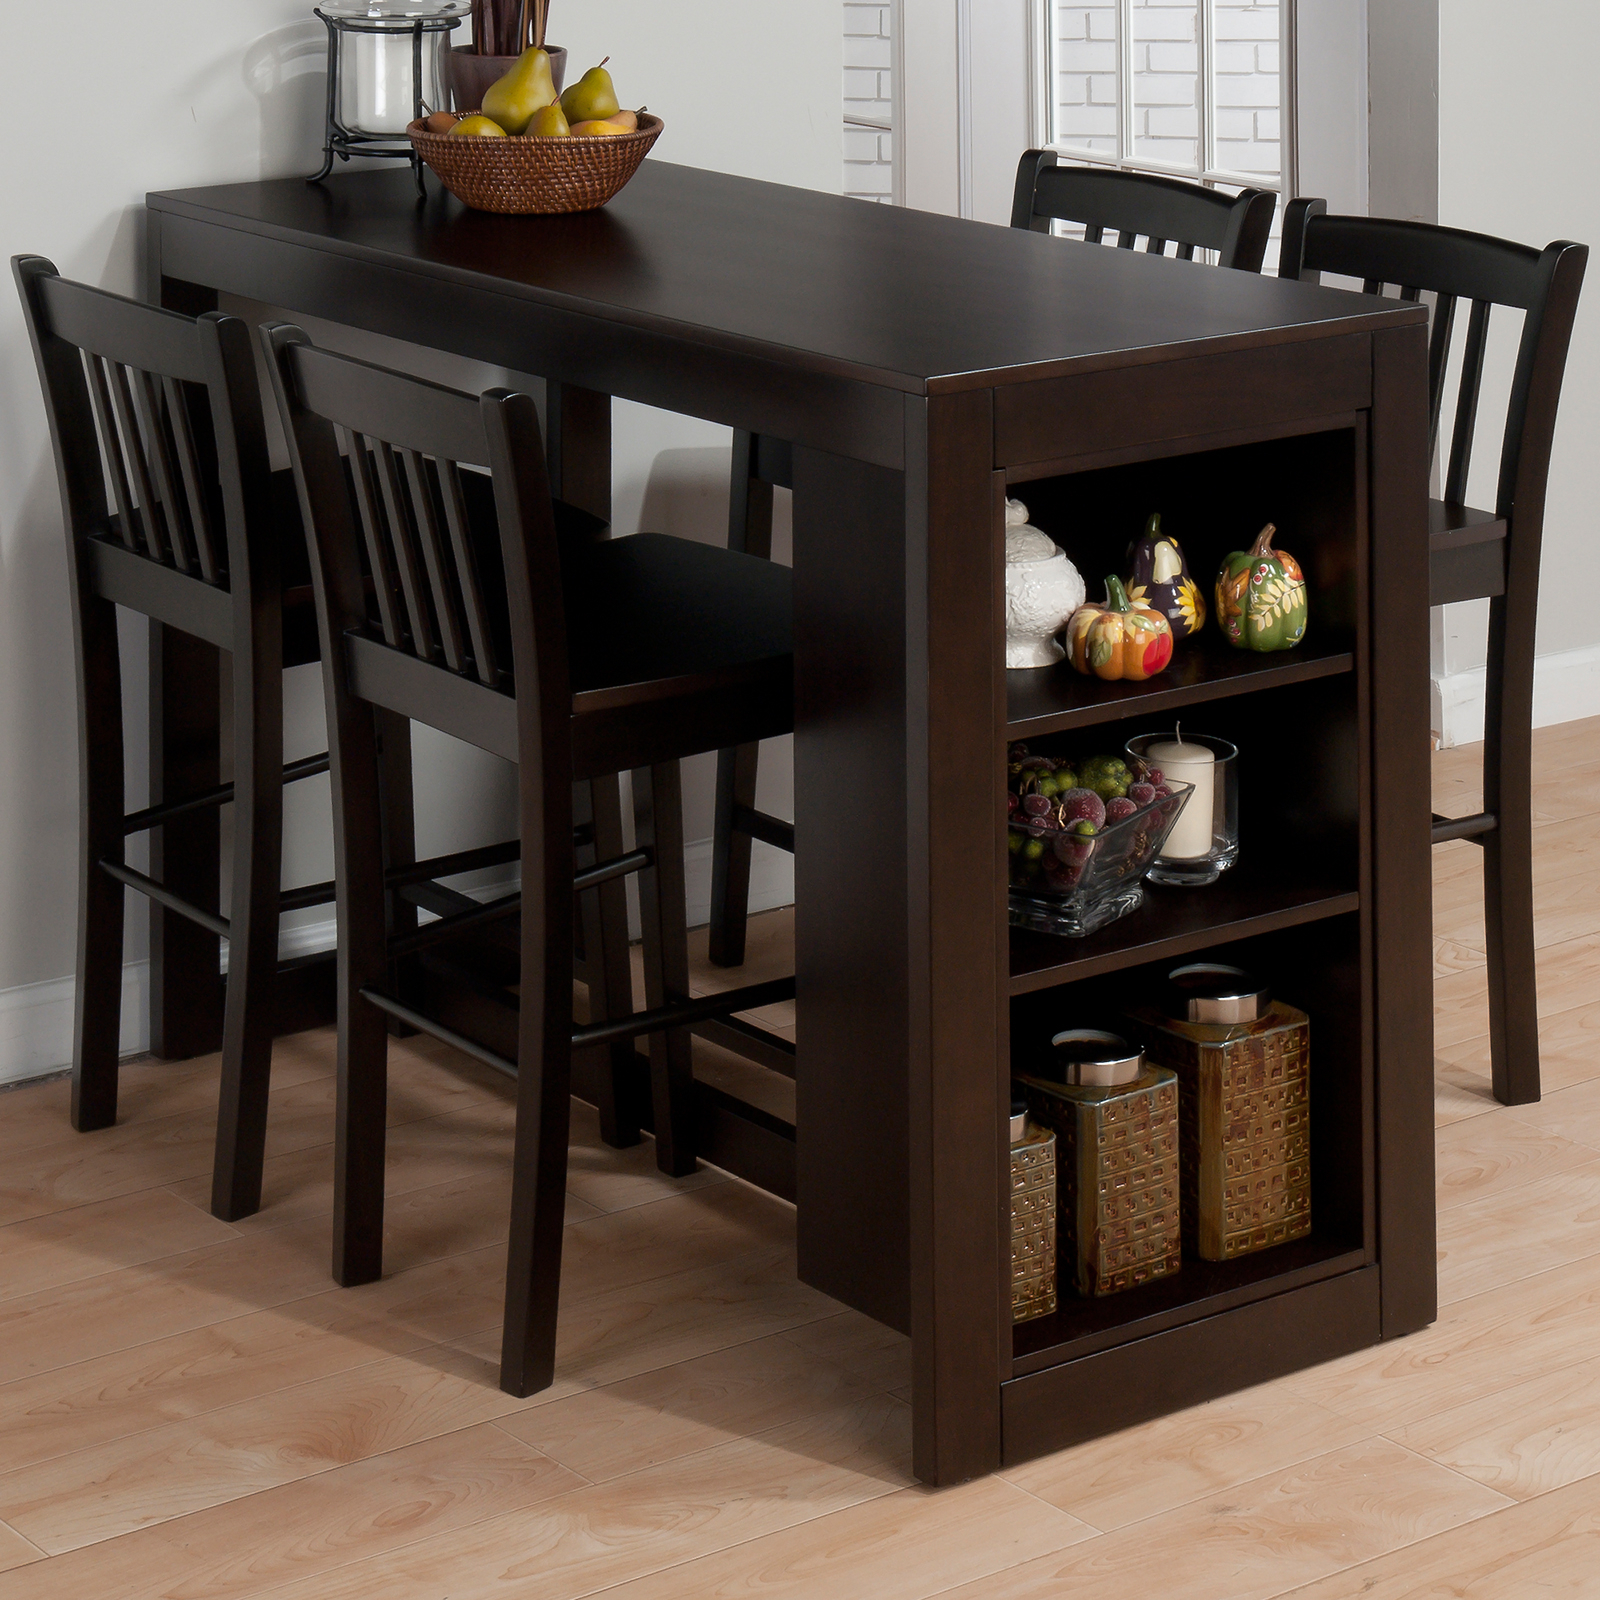 Pub Tables And Chair Sets Ideas On Foter